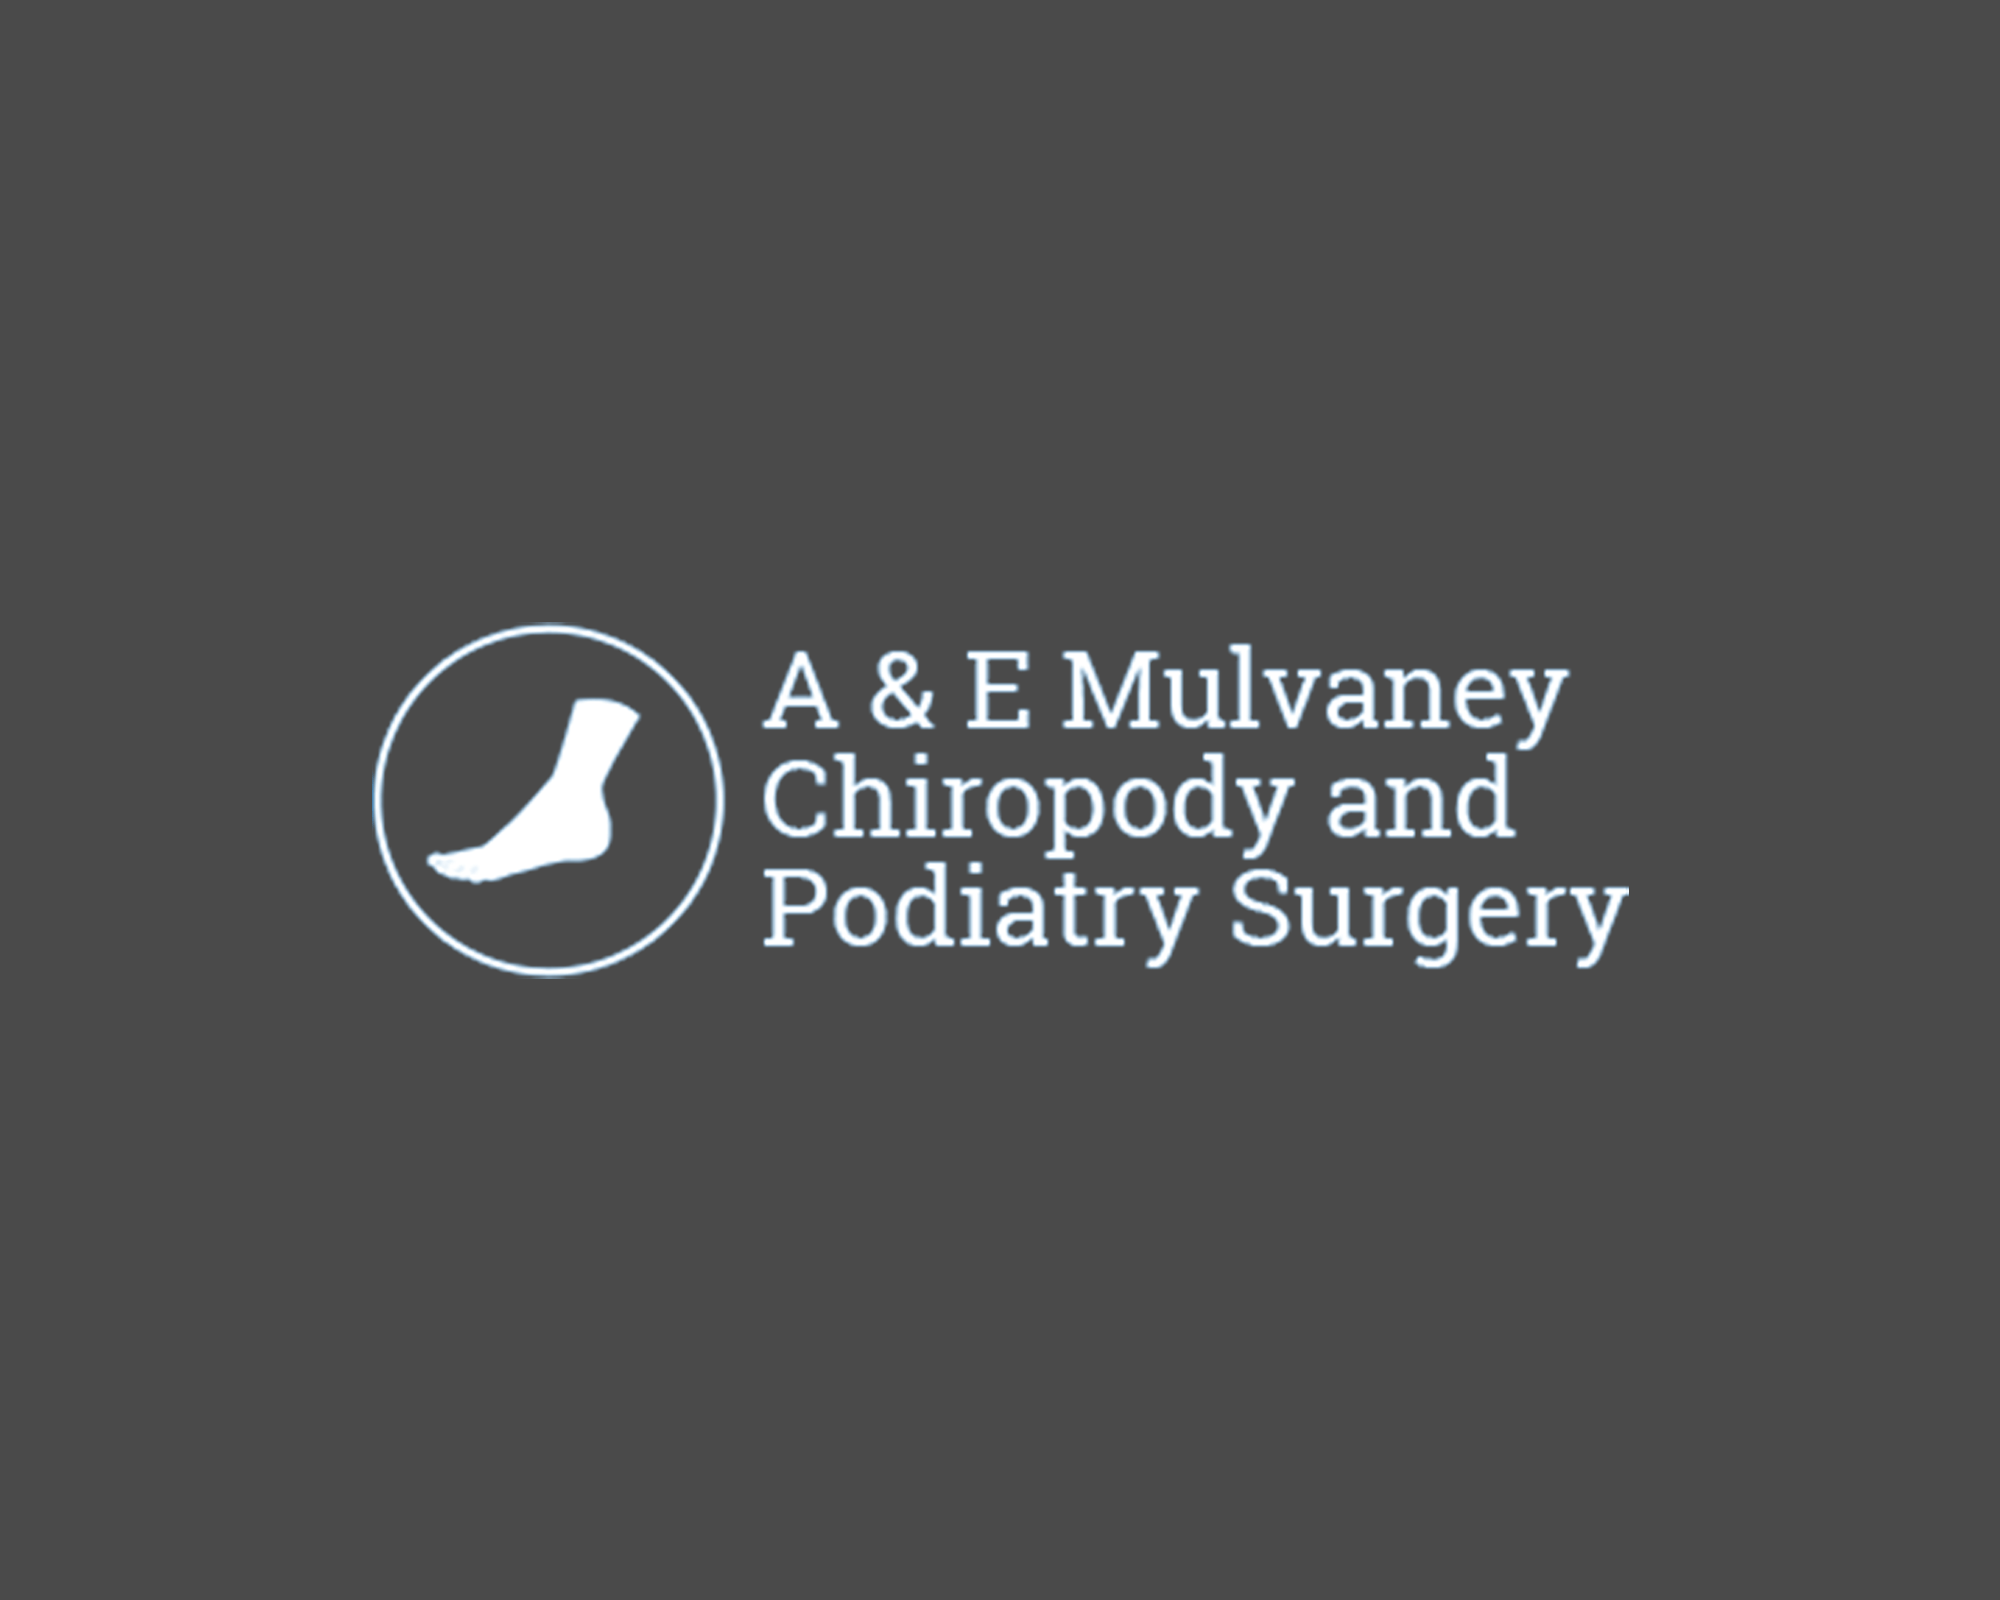 a & e mulvaney chiropody and podiatry surgery Logo